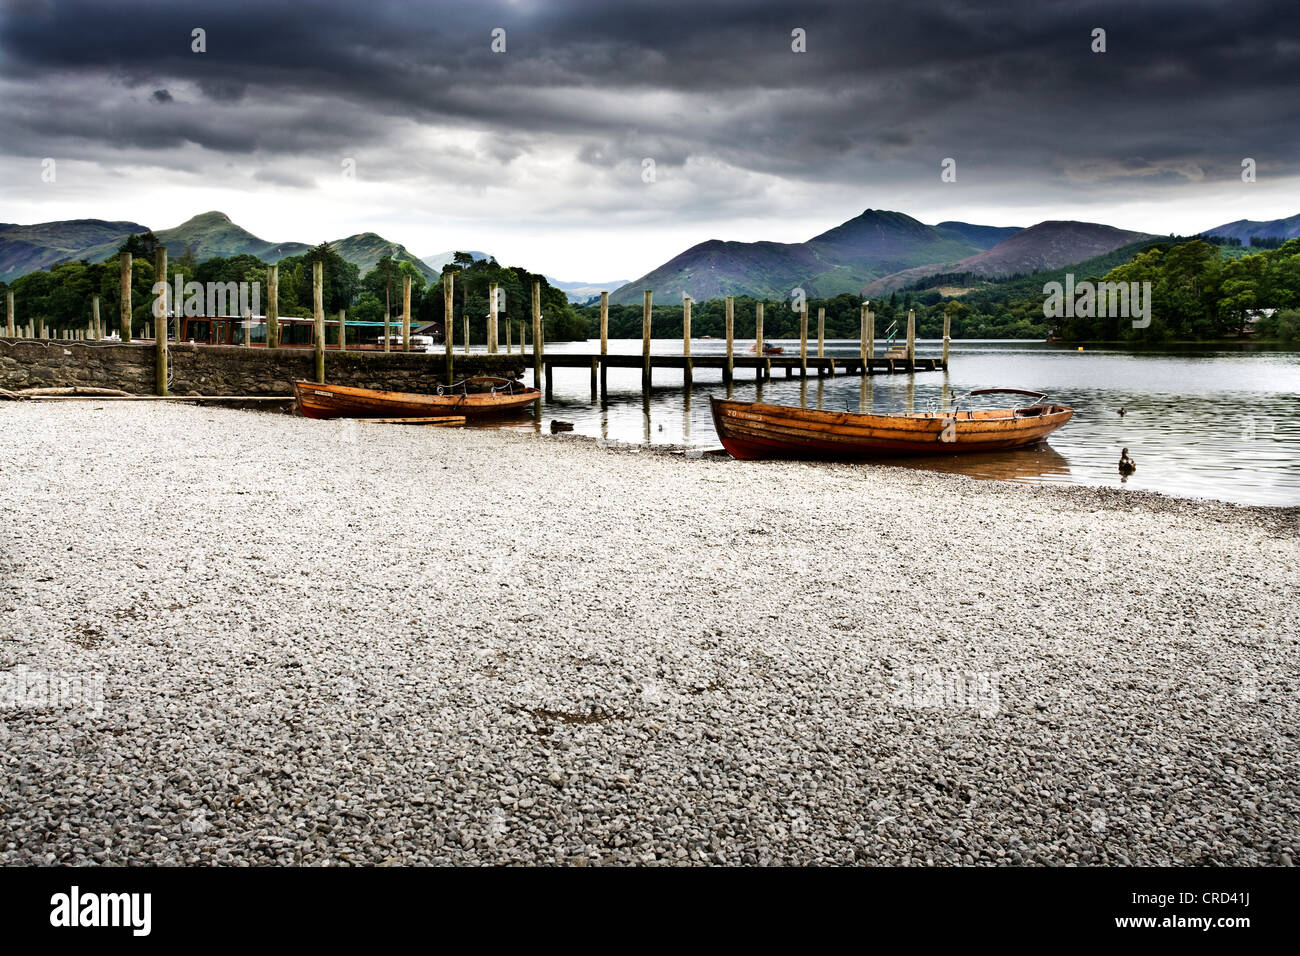 derwant water lake keswick rowing boat wooden cgi backgrounds car stone shingle banking jetty mountains - Stock Image